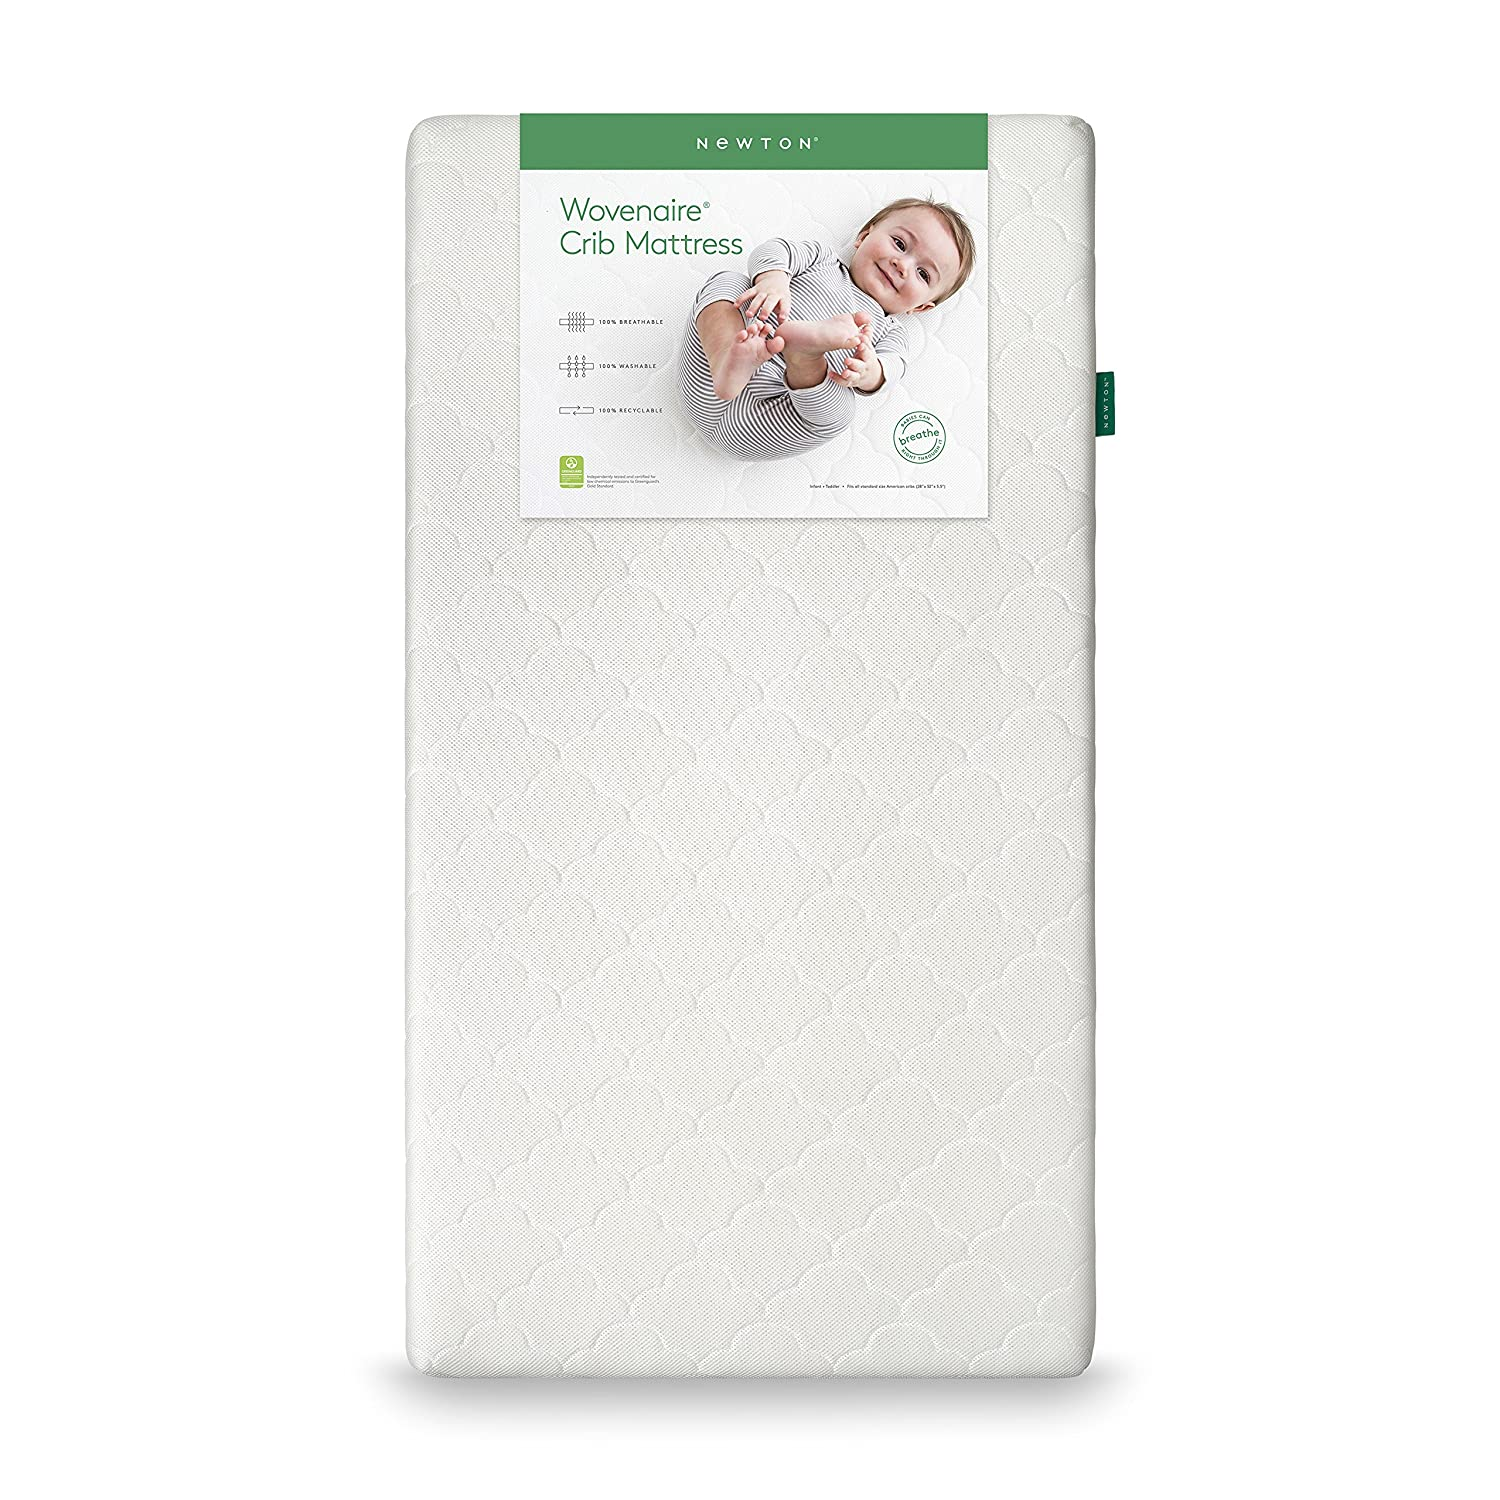 Newton Crib Mattress & Toddler Mattress: 100% Breathable, Washable, and Recyclable